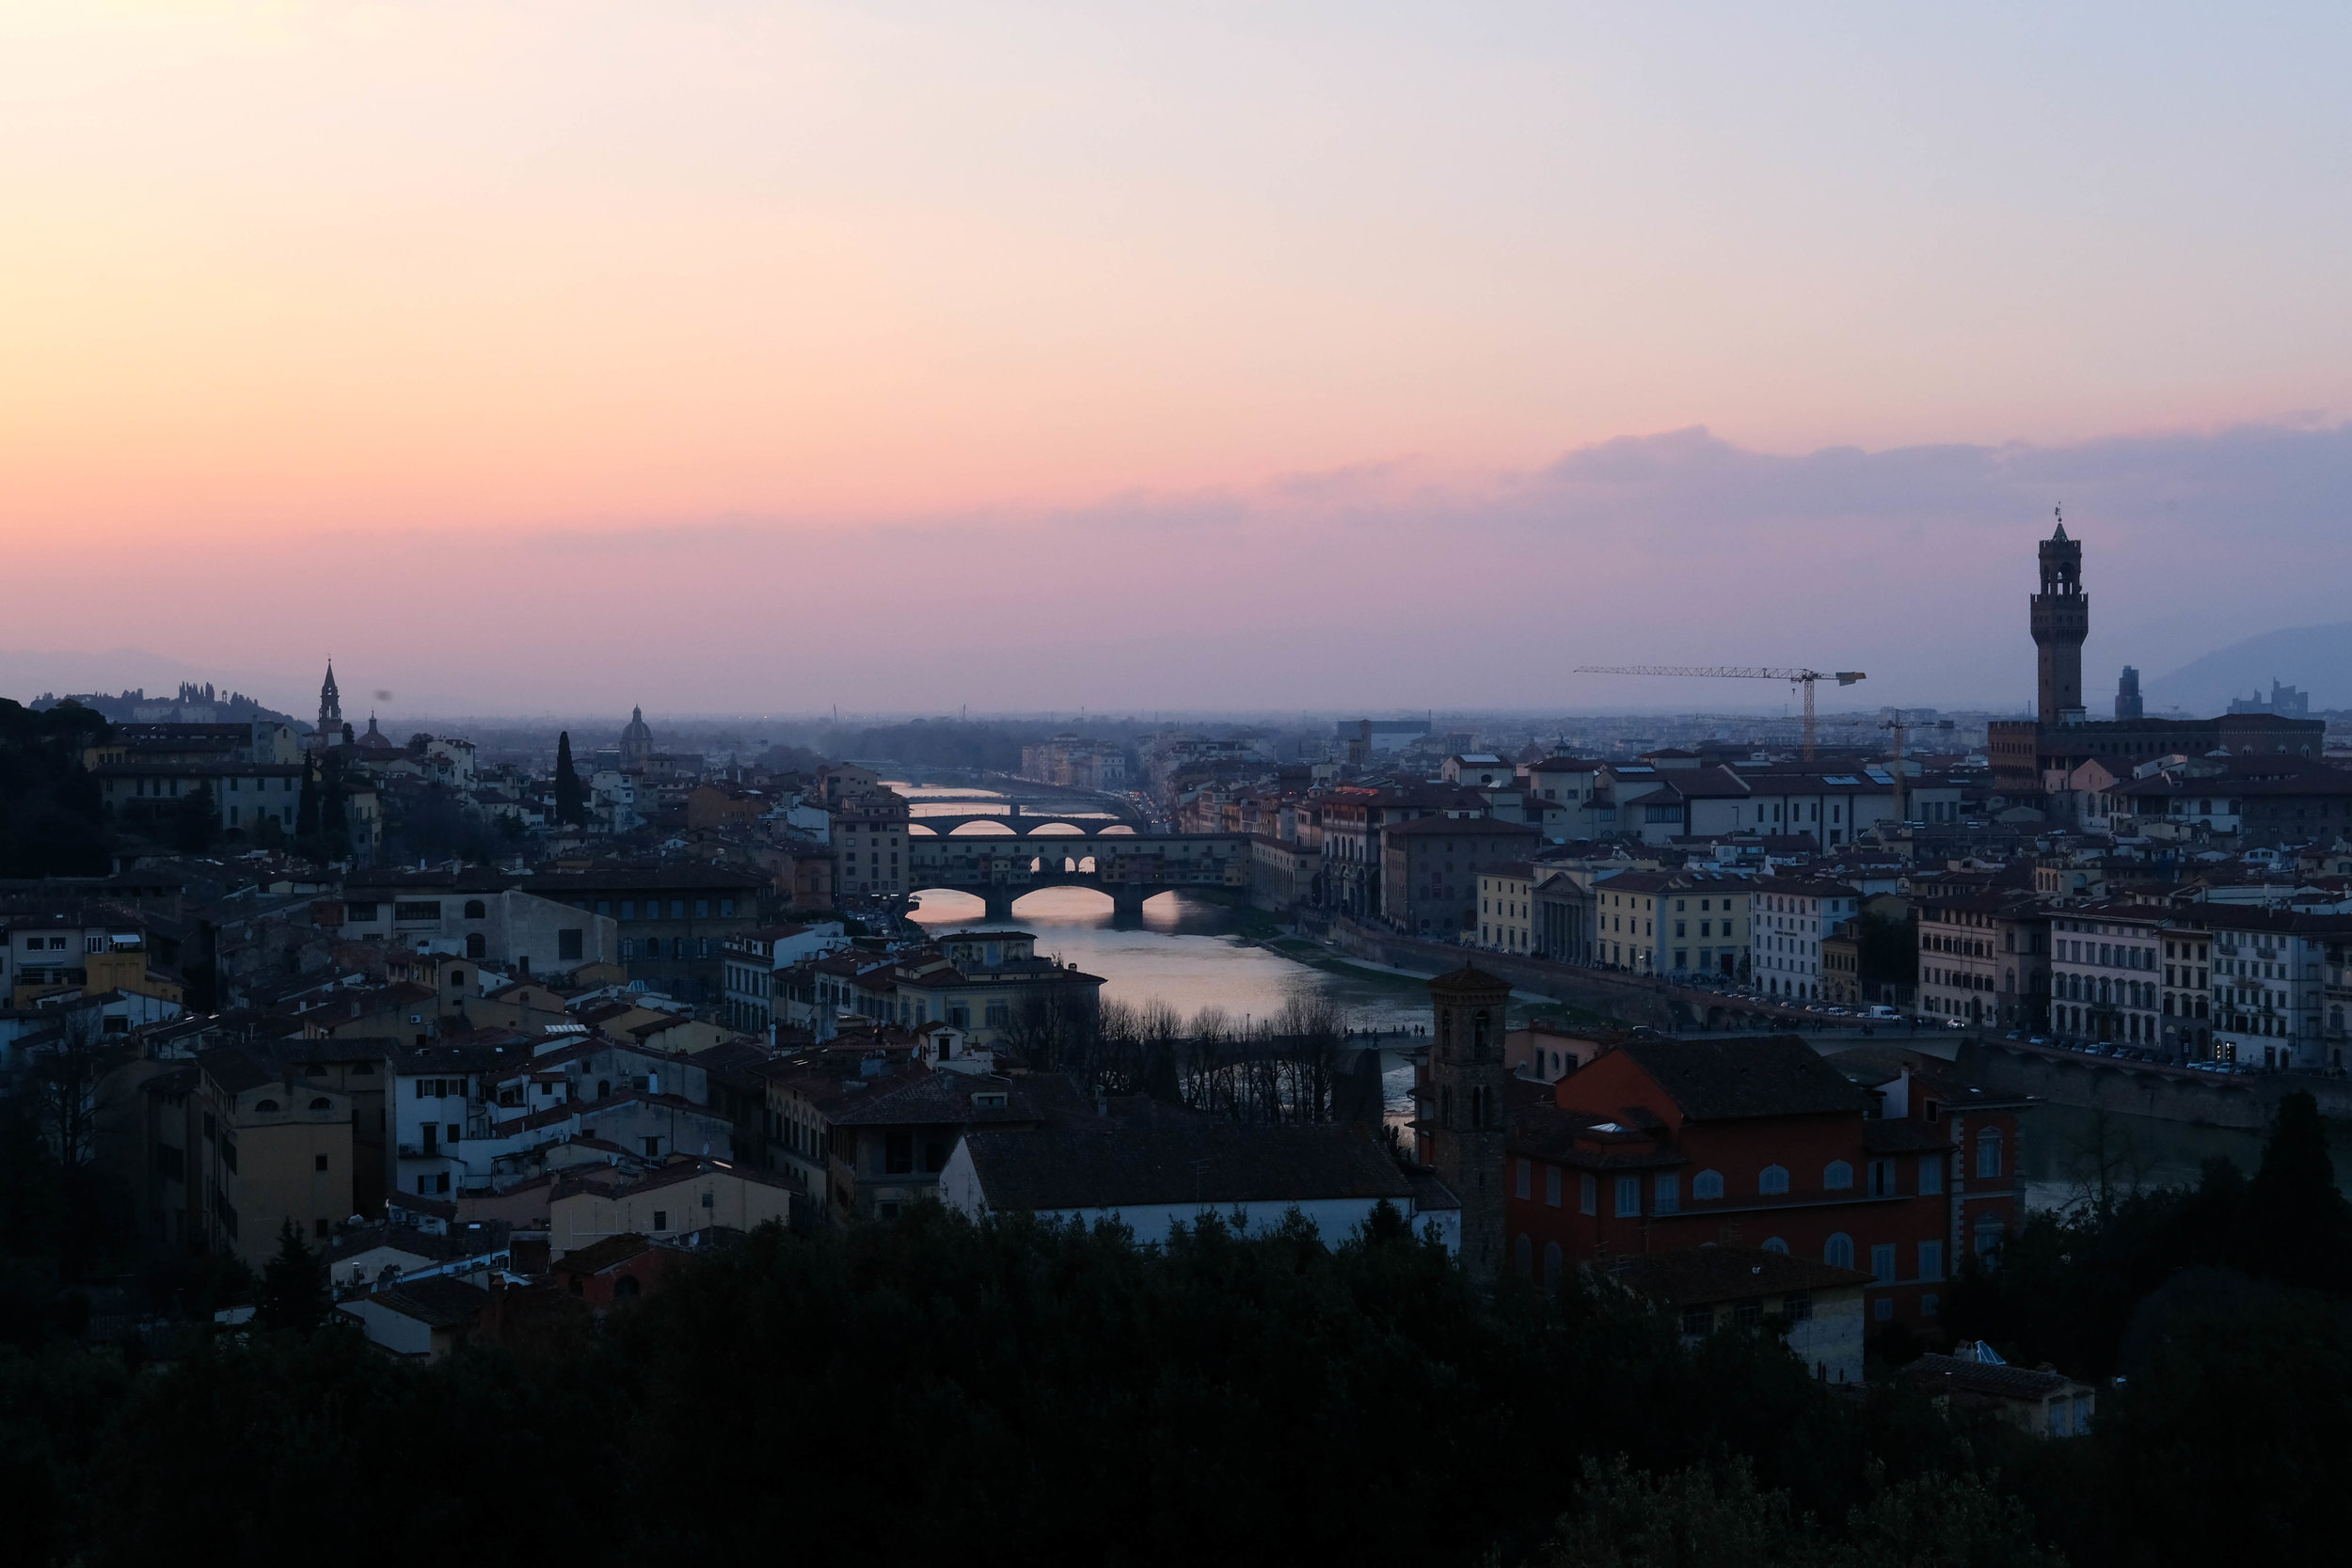 "<p style=""font-family:brandon-grotesque;font-weight:500; font-size:11px; text-center:left; color:light grey;letter-spacing: 1px"">MARCH 27, 2018 • ARRIVEDERCI FIRENZE • �Florence, Italy 🇮🇹</p>"